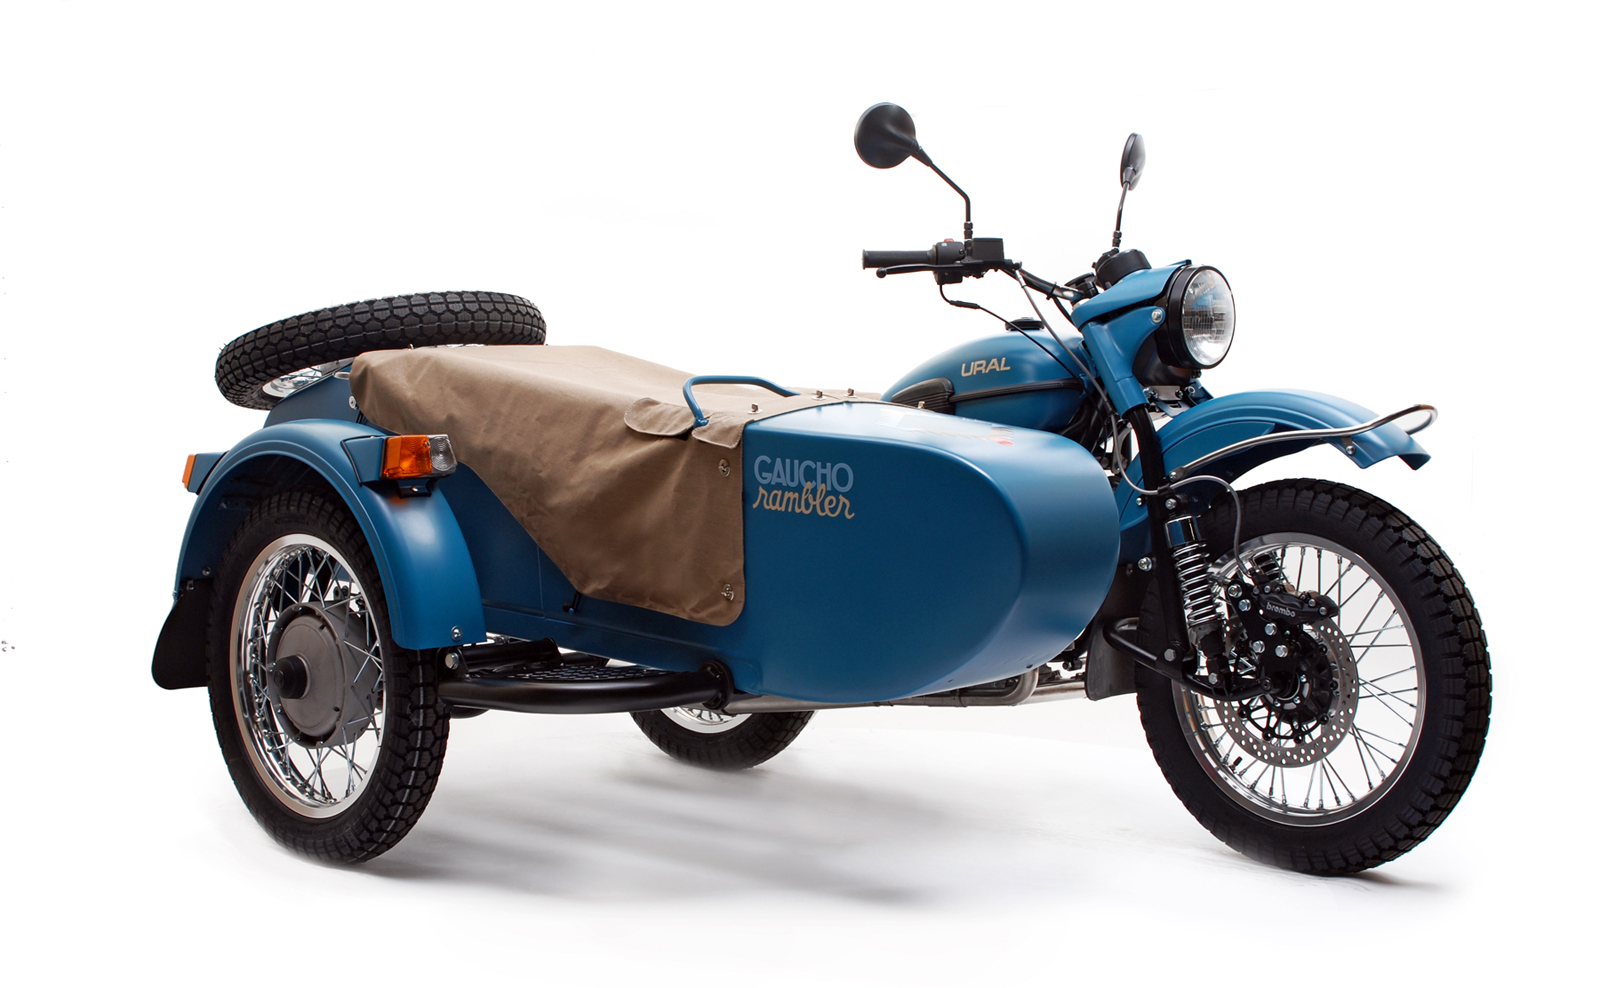 2013 ural gaucho rambler limited edition price annouced only 50 rh autoevolution com Ural 750 Engine Ural Engine Truck